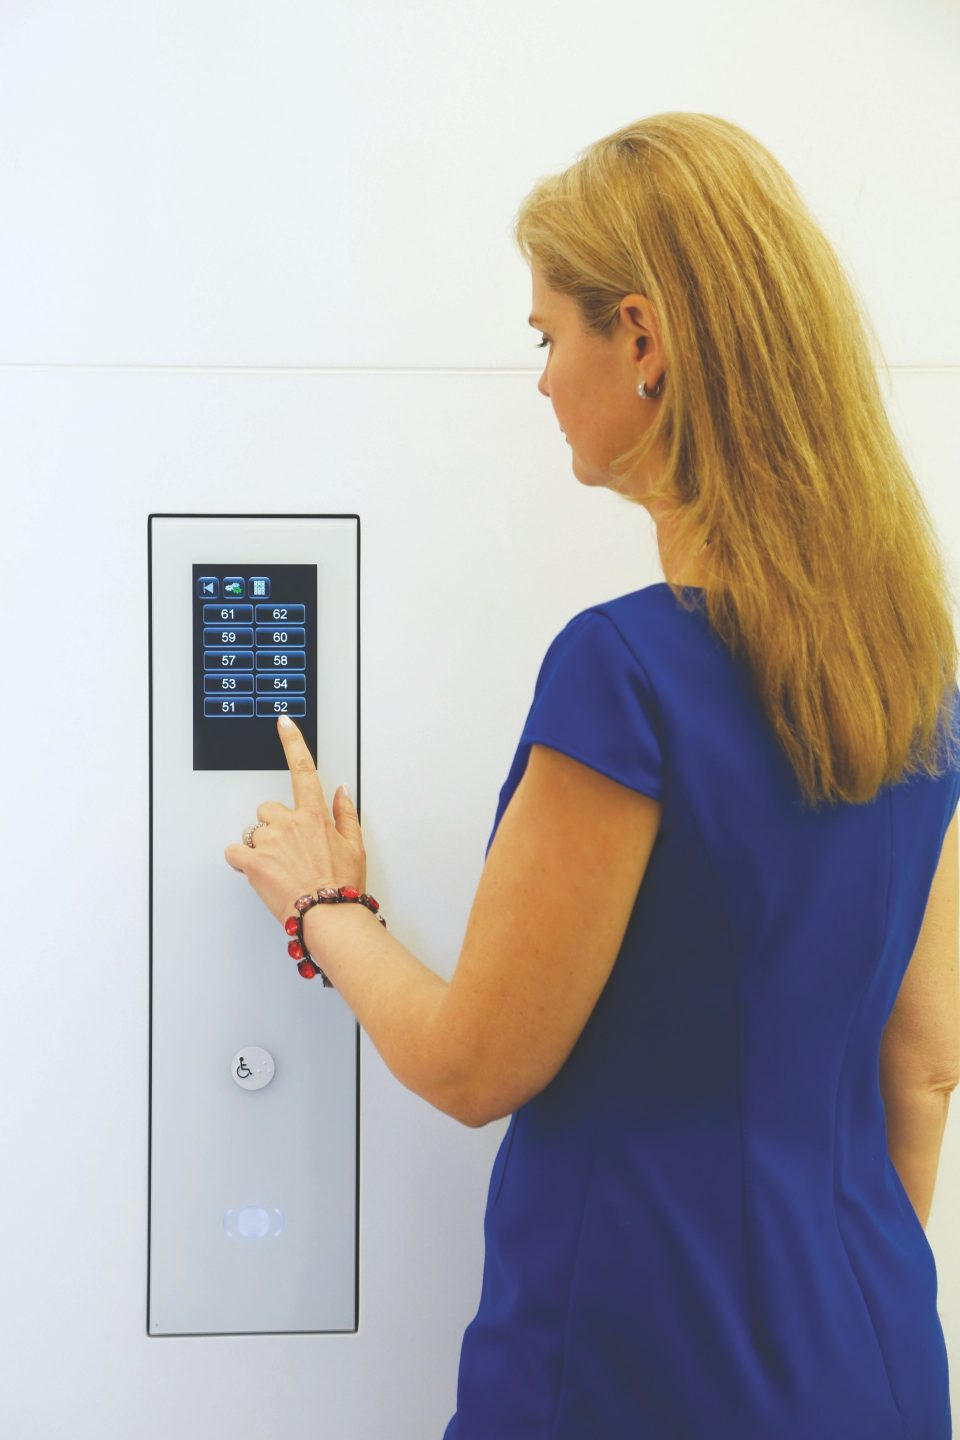 PORT Technology provides elevator access - Custom designed glass PORT terminals from Schindler not only set a new design standard, but offer guests and tenants at 4 World Trade Center personalized service via seamlessly integrated touch-screen and RFID interfaces.